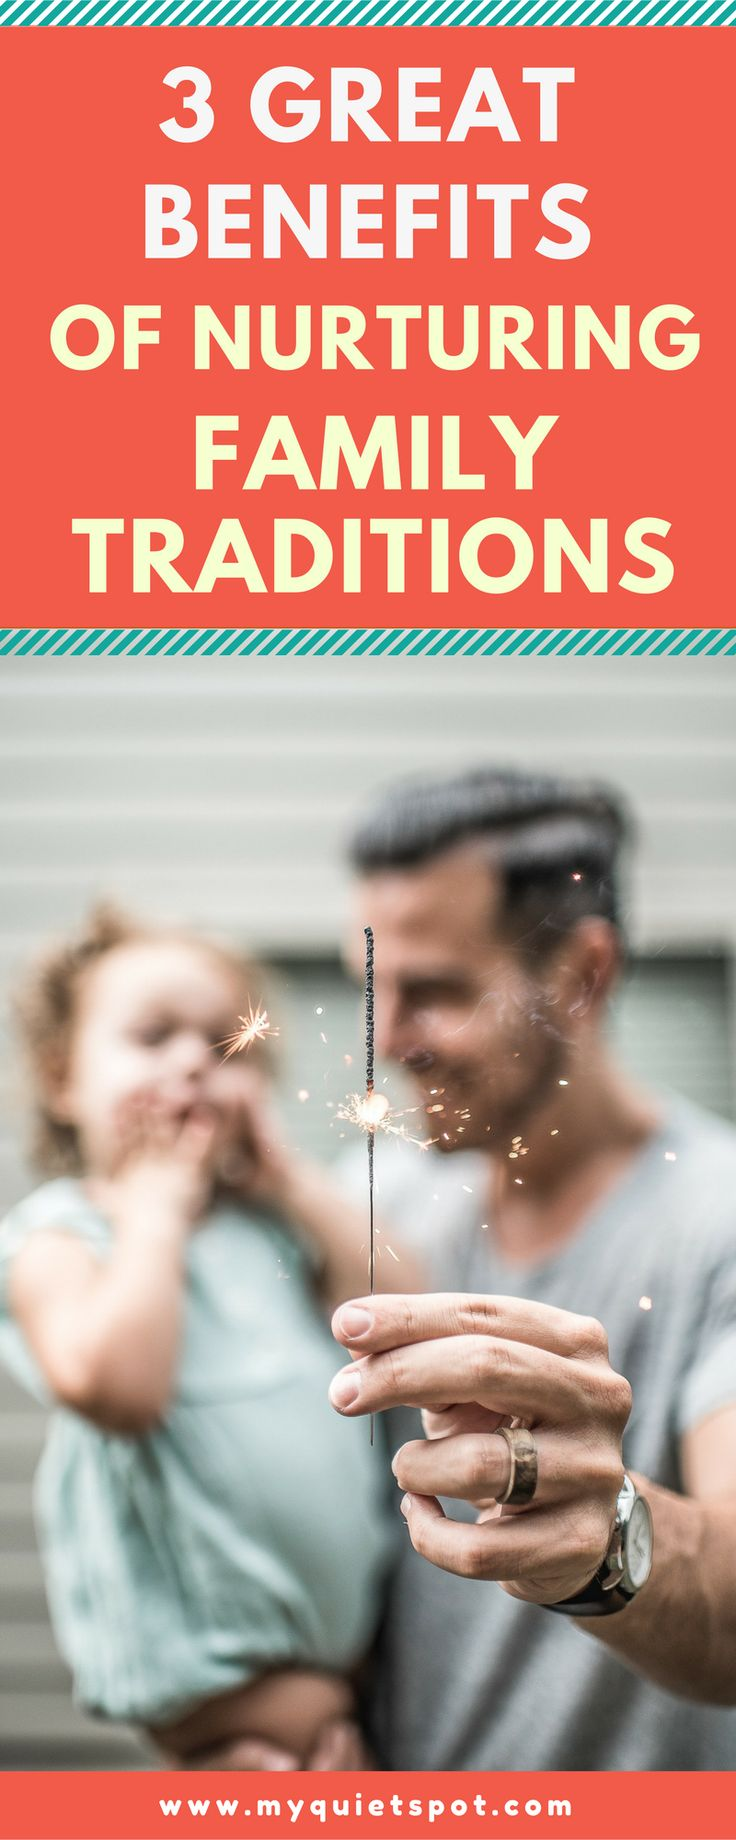 Have you ever considered what your family's traditions mean for your kids' development? Read these 3 benefits that will make you nurture your traditions, or even start new ones.